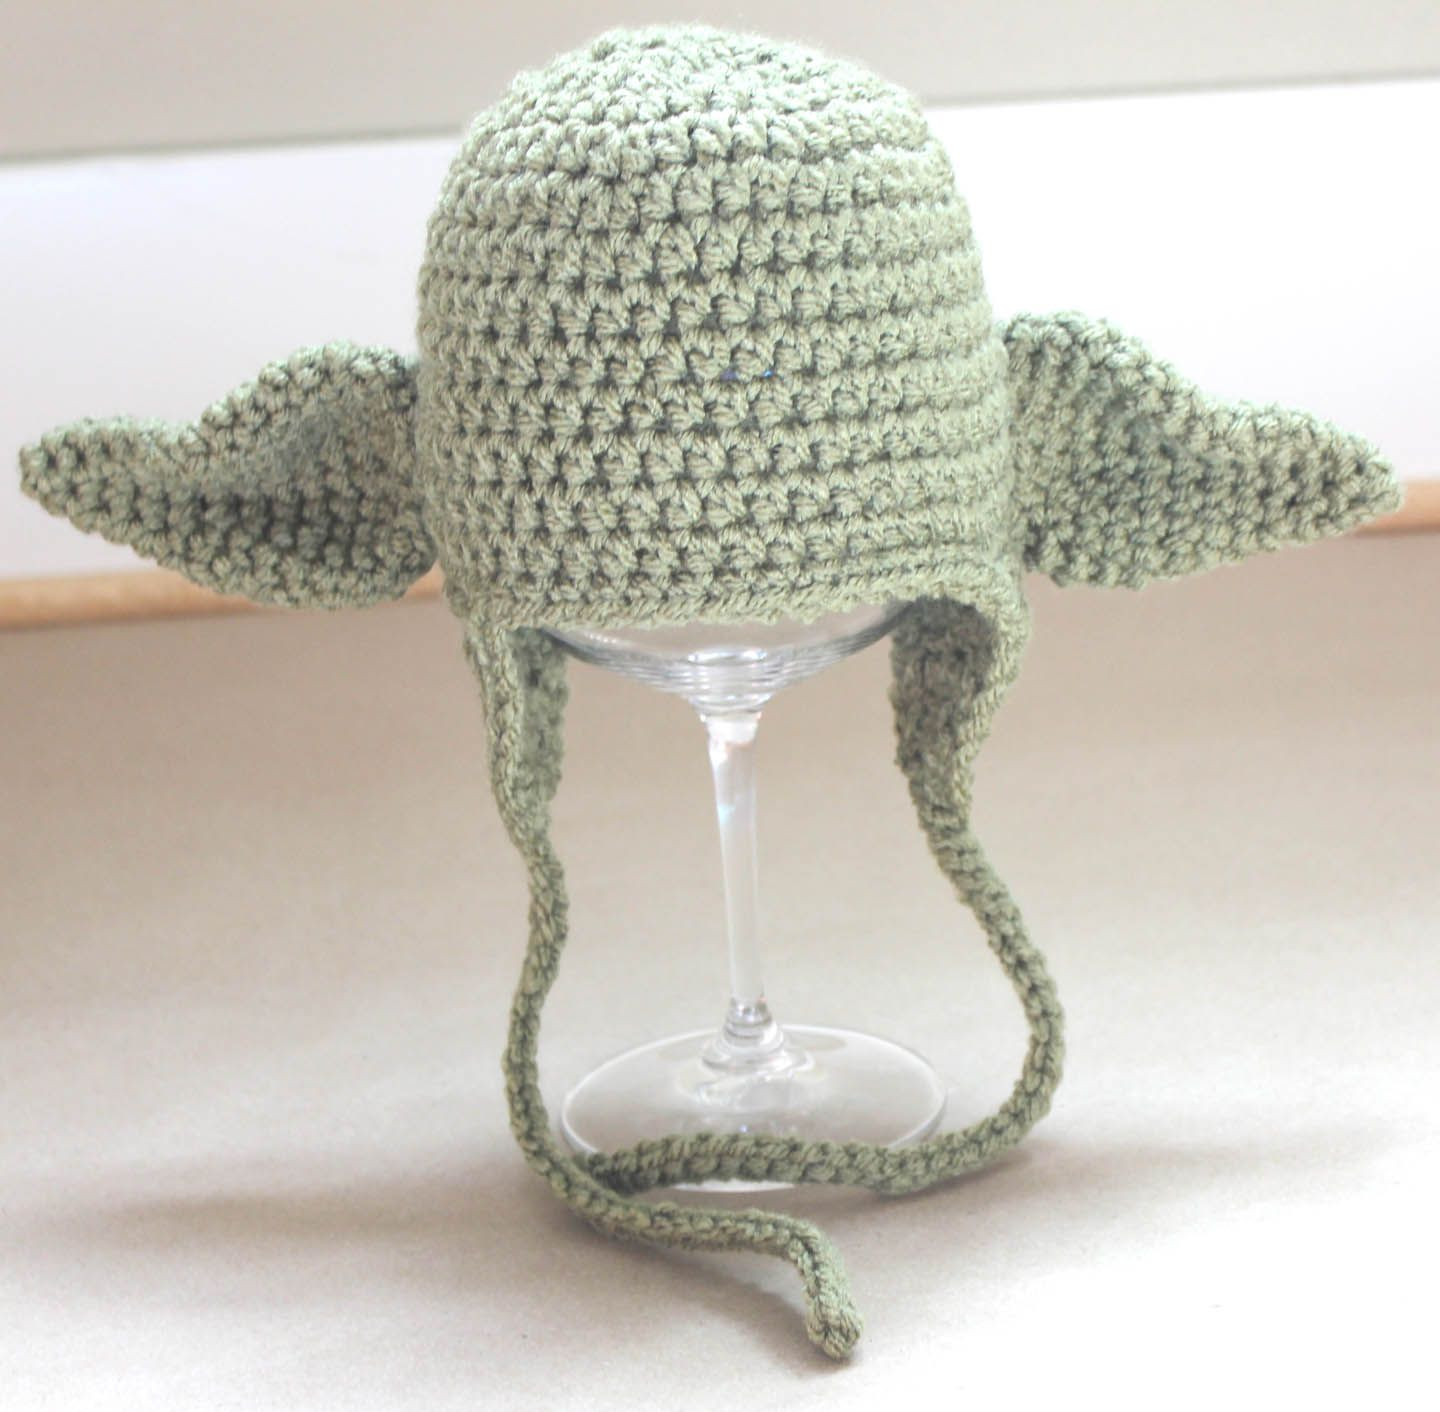 FREE - Crochet Pattern for Yoda Hat | Star Wars amigurumi ...